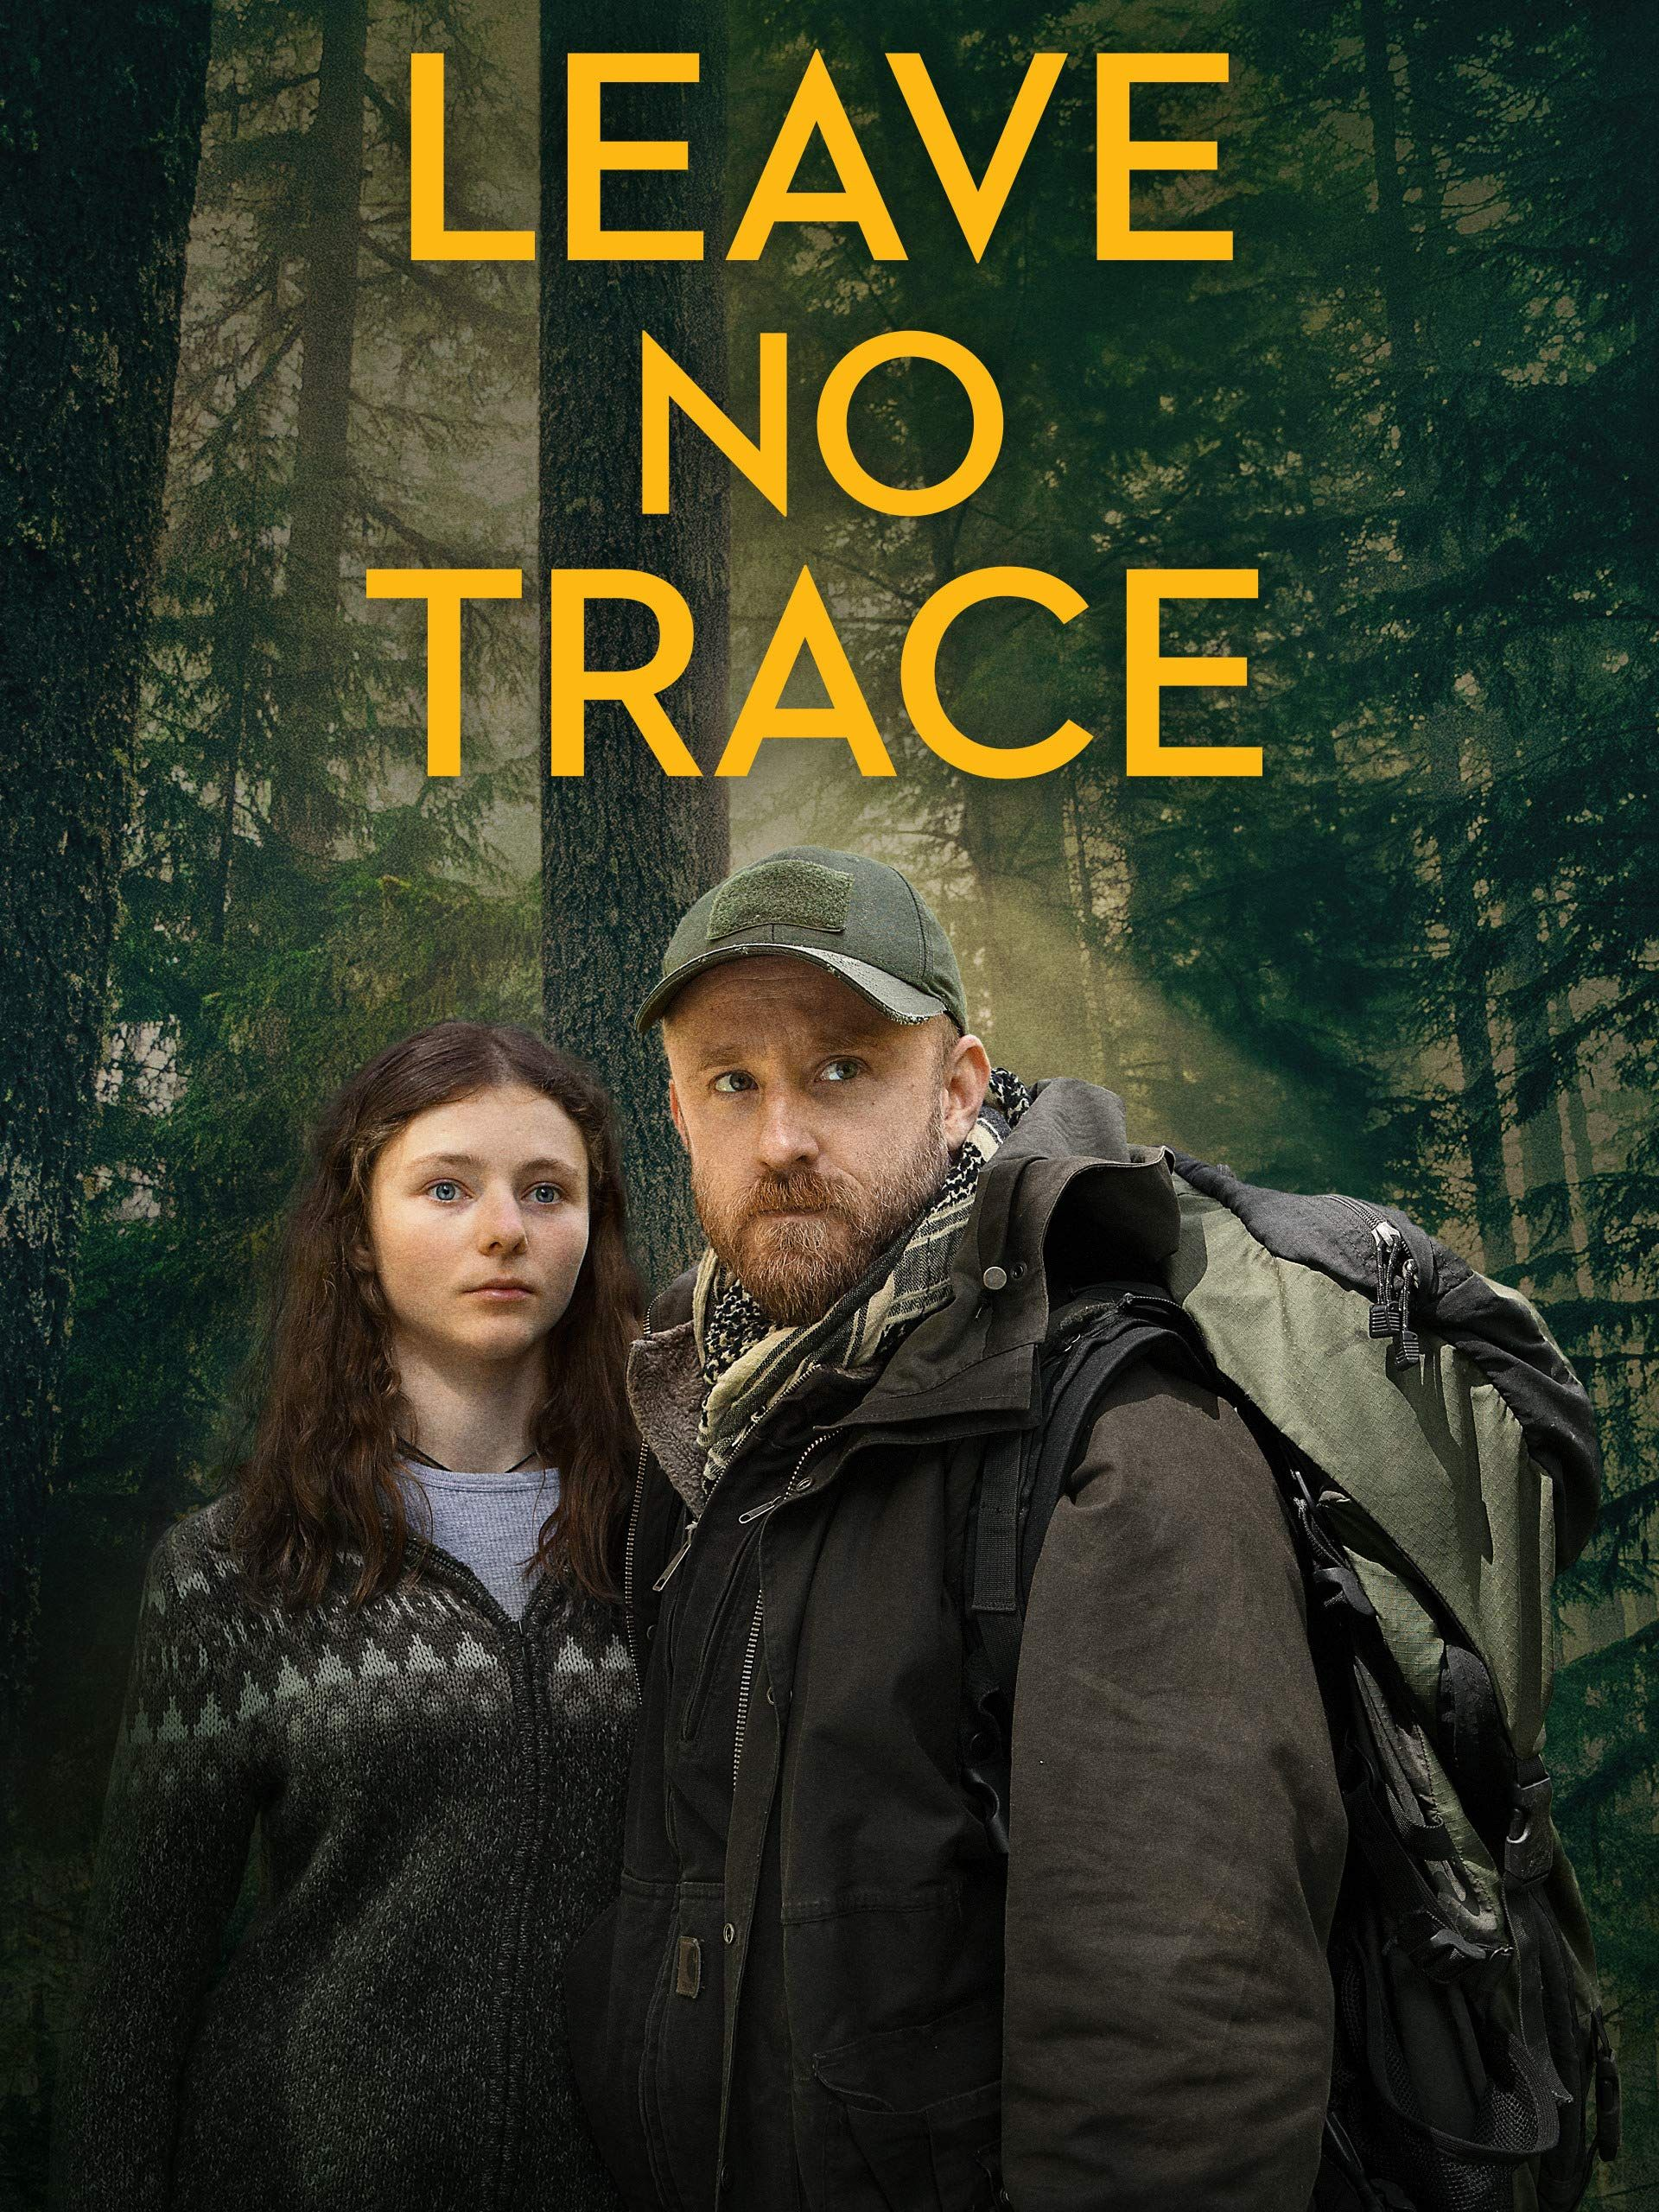 Pin By Comrade Utopia On Freedom Of The Press Library Leave No Trace Full Movies Documentaries